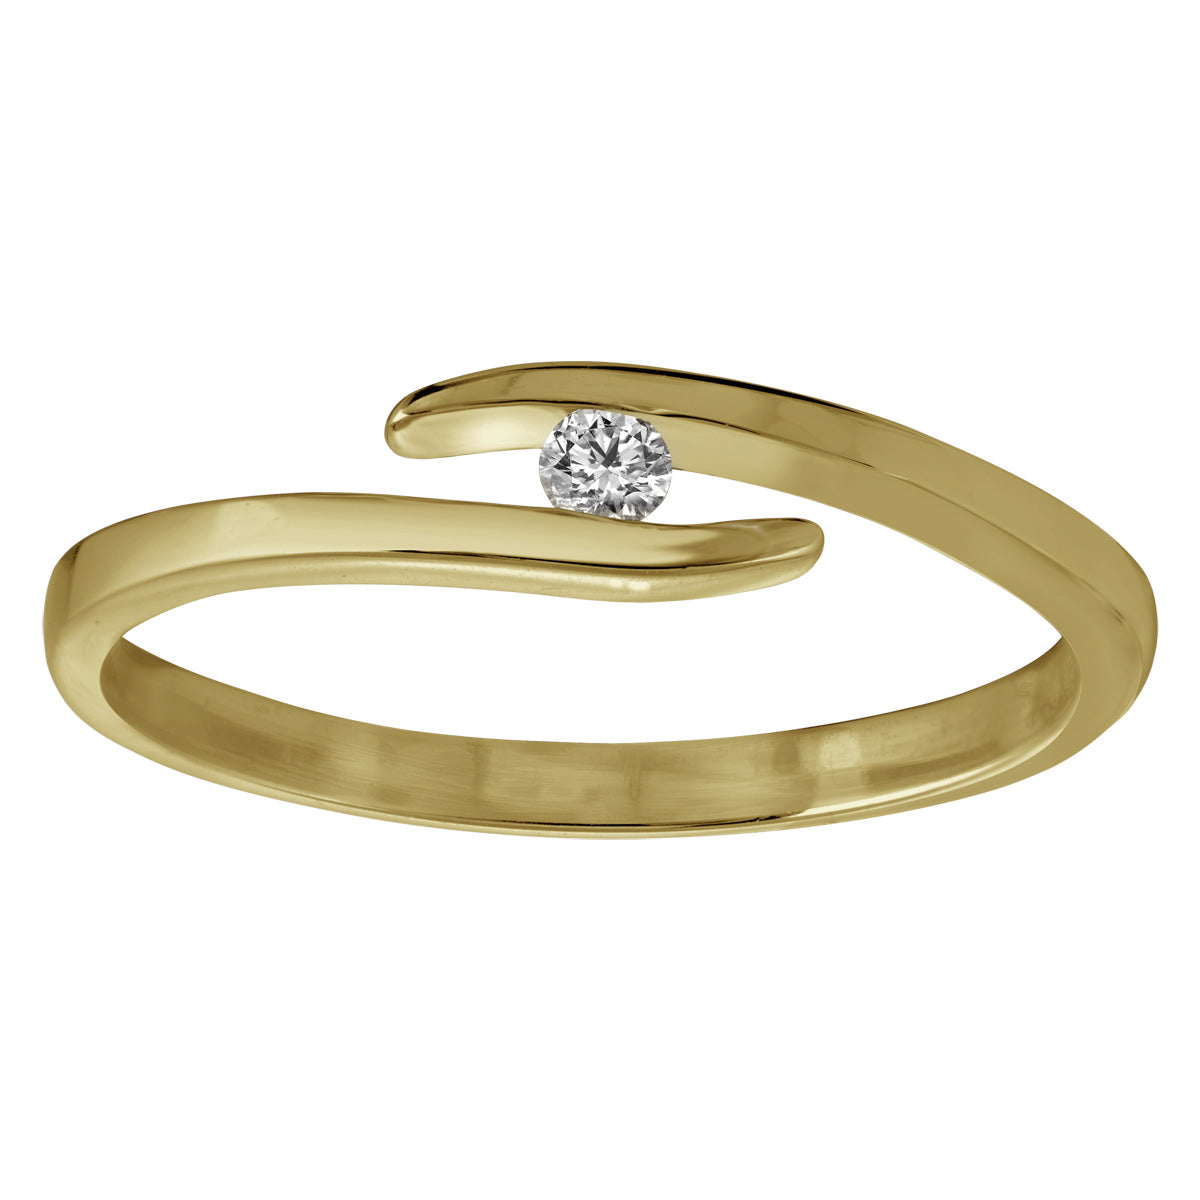 Jessica Jewellery yellow gold floating diamond ring.